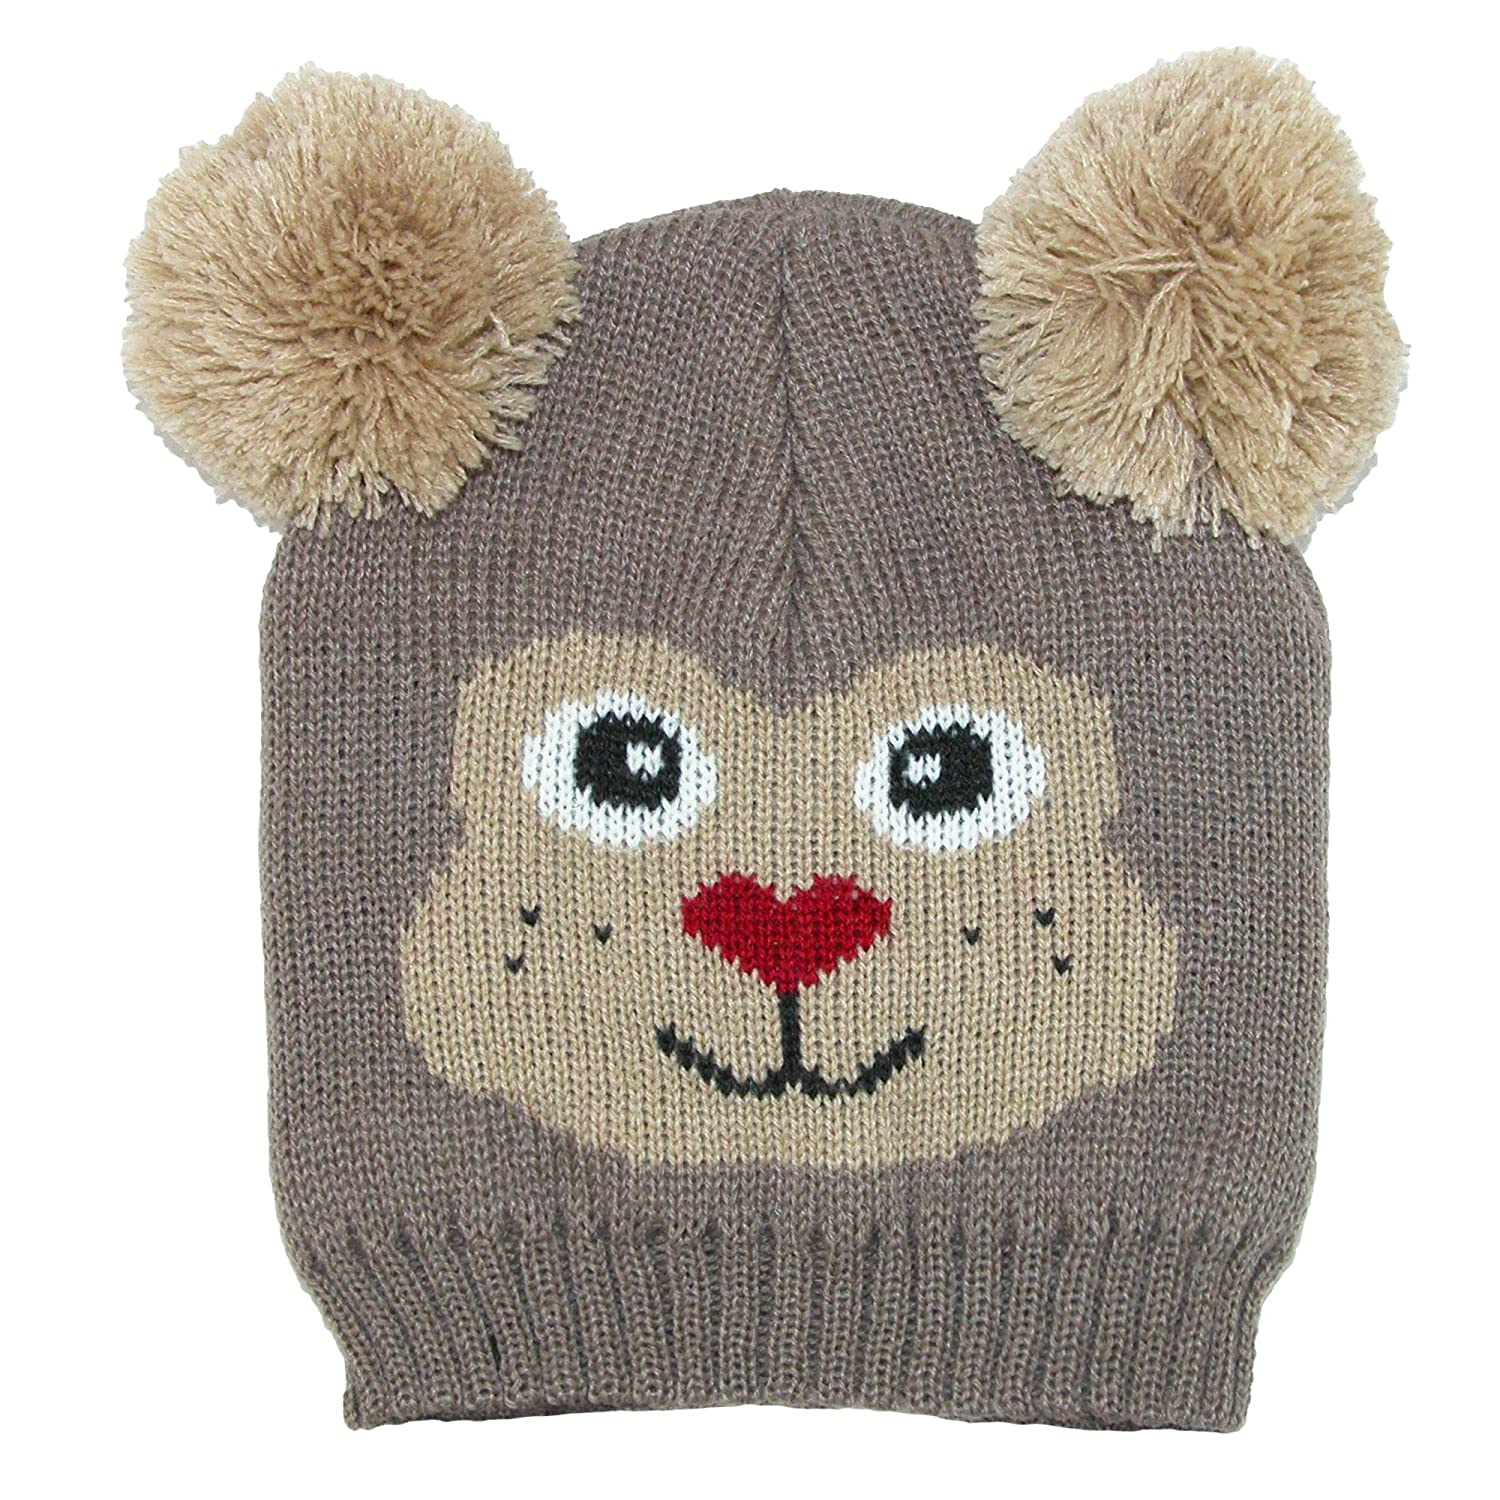 0d13db9ad6d CTM Kids  Knit Animal Face Hat with Poms  Amazon.co.uk  Clothing